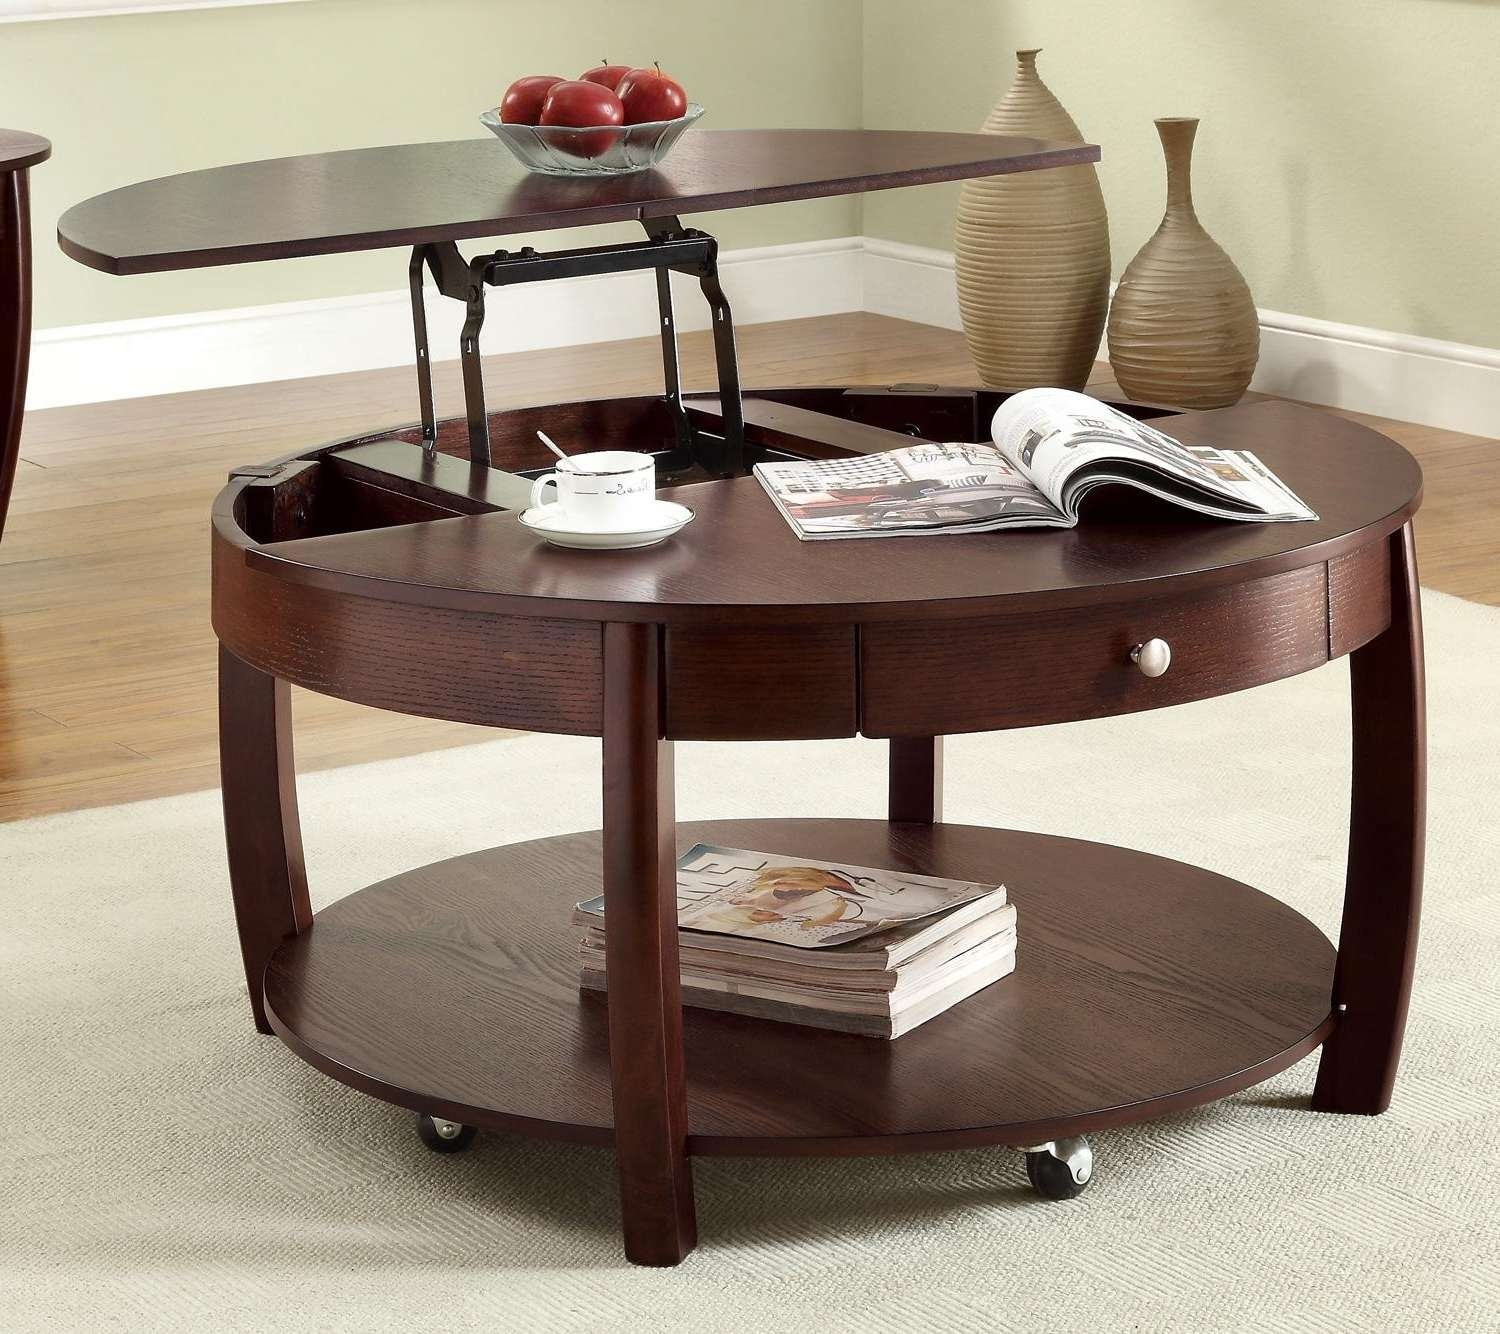 Fullsize Of Coffee Table Lift Top